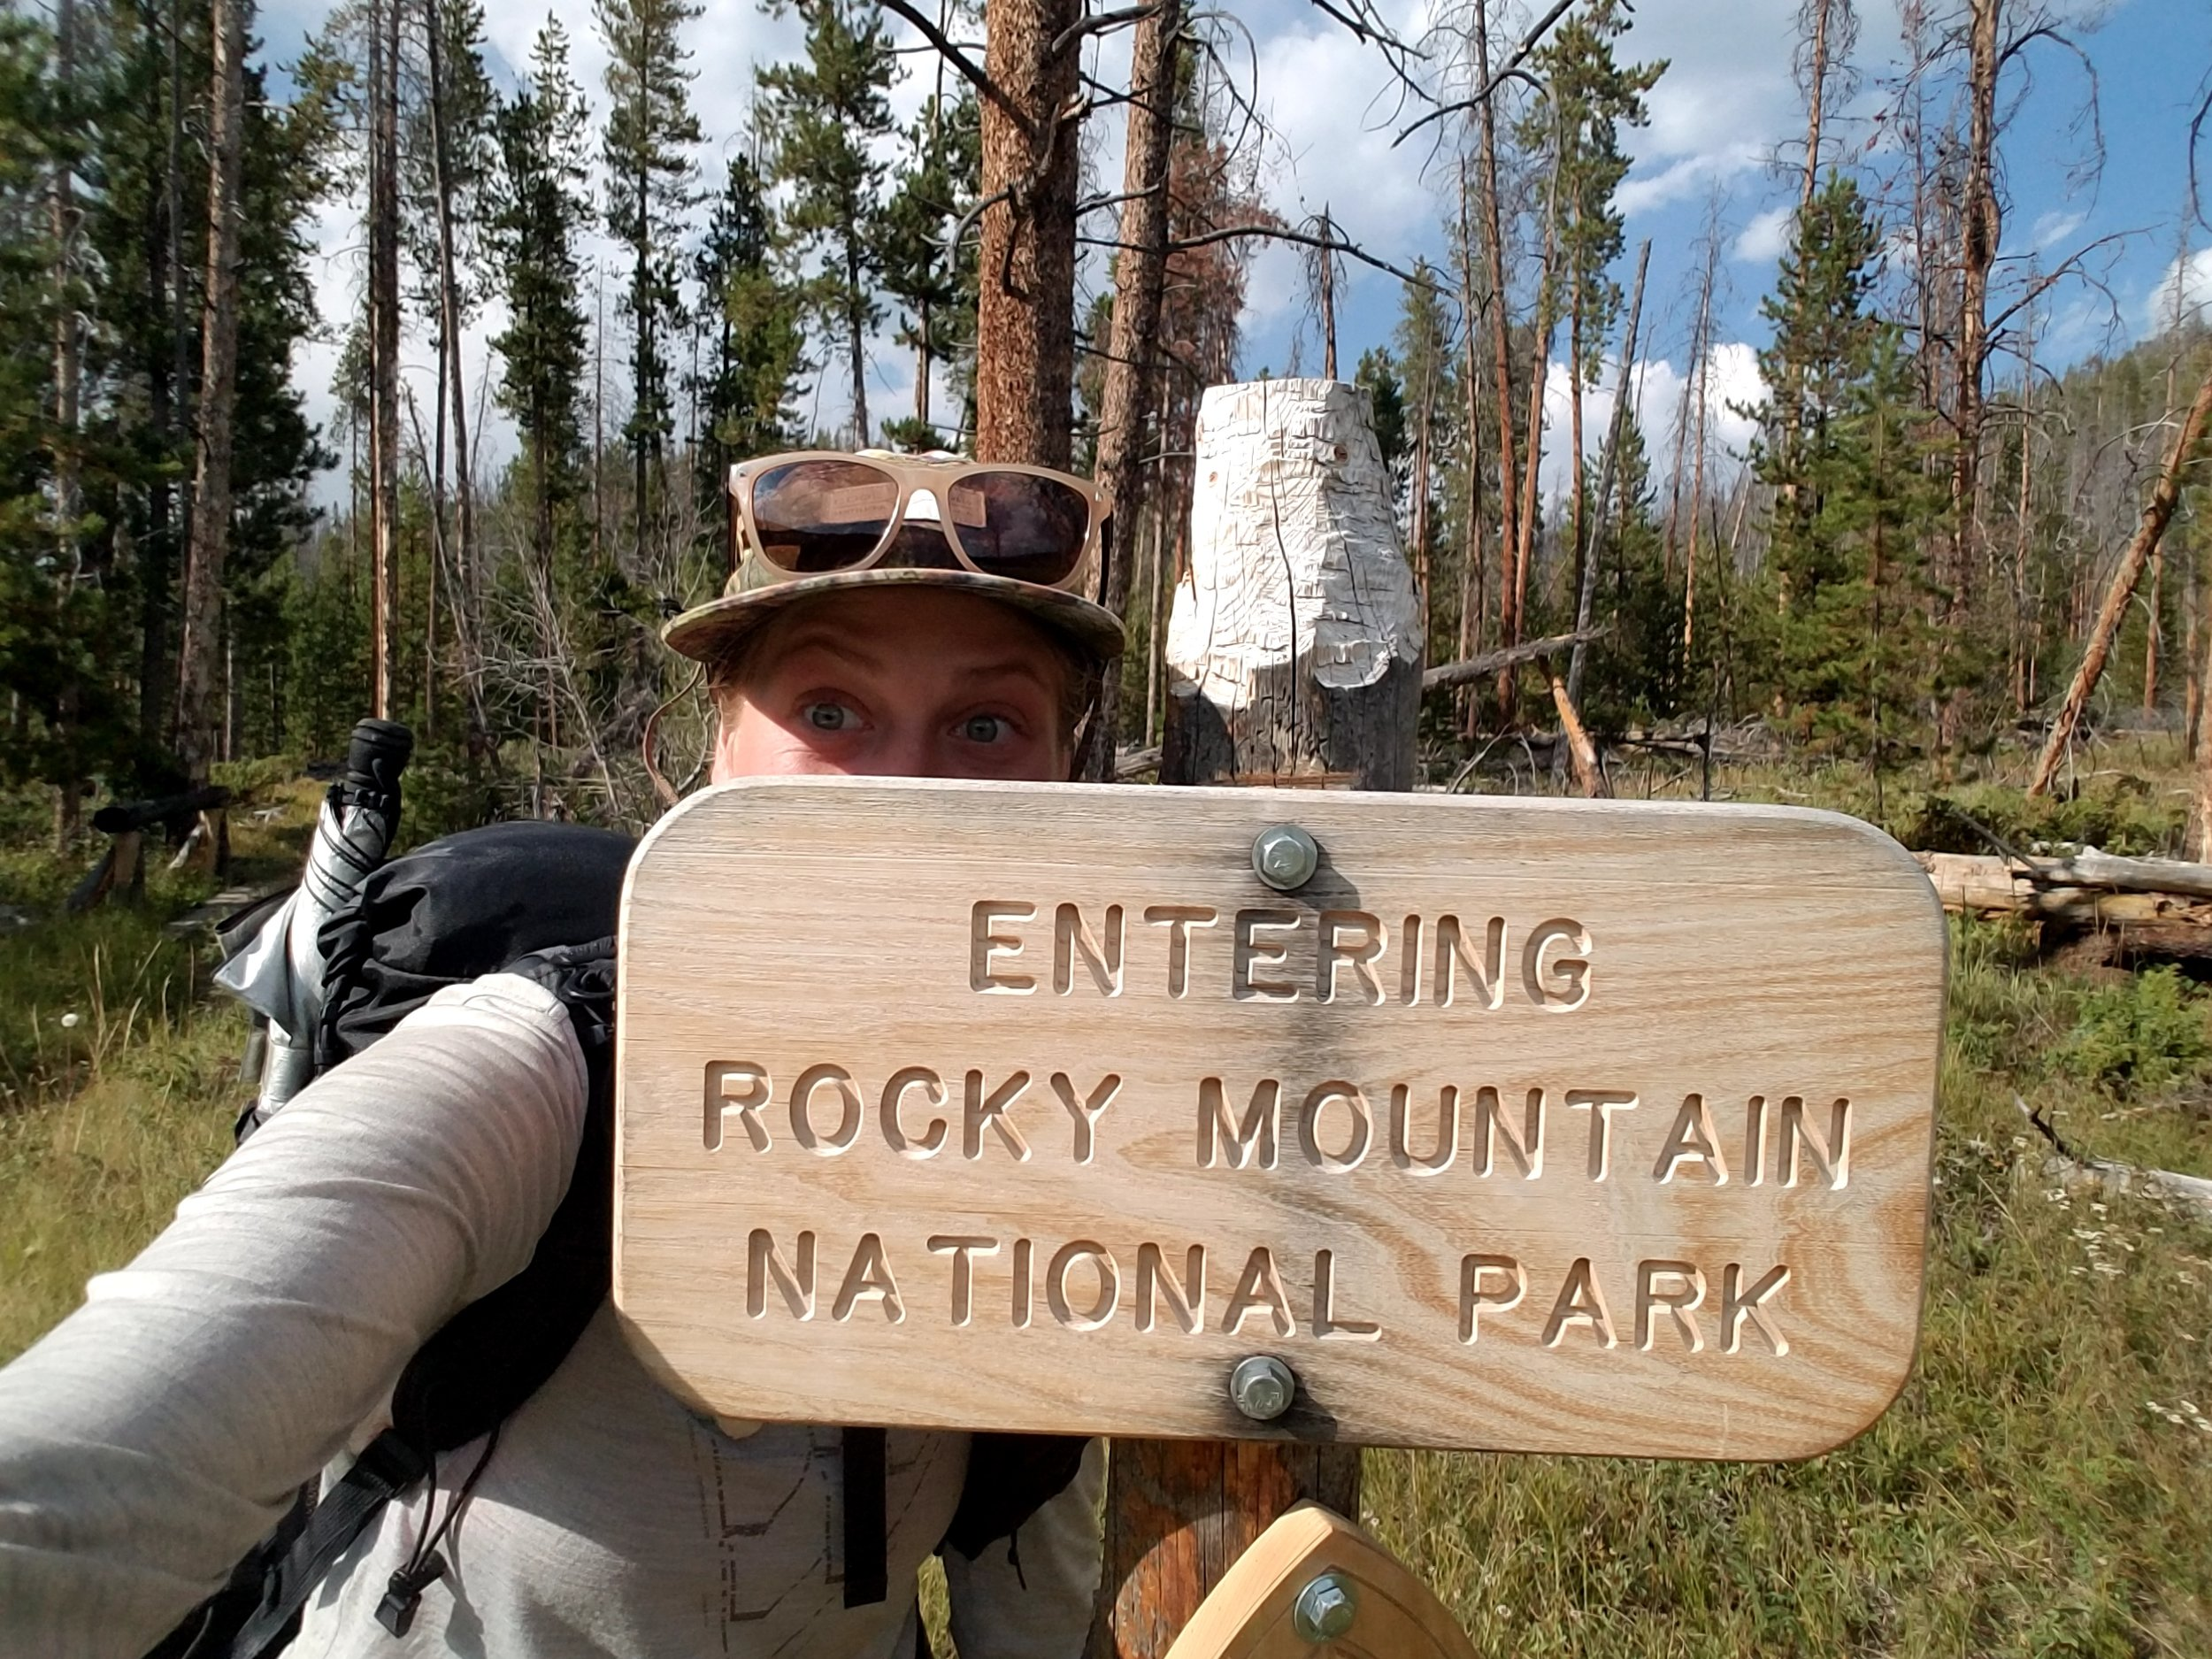 Entering my third National Park of the trip near Grand Lake, CO.